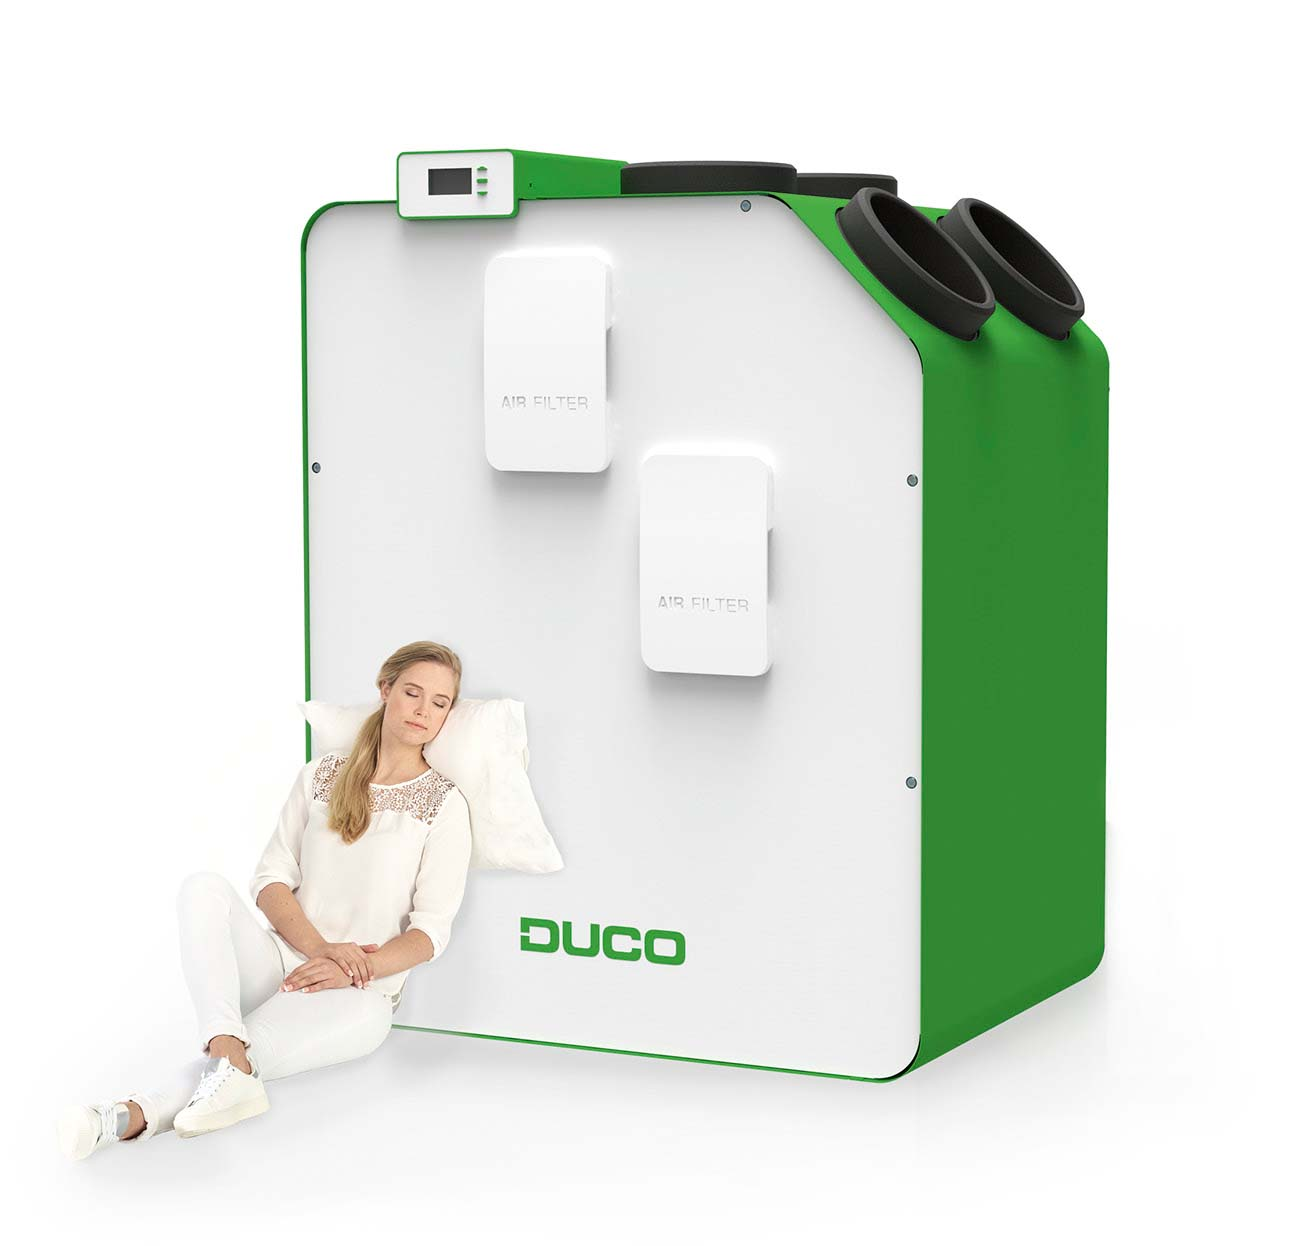 DucoBox Energy - De stilste WTW-unit van Europa